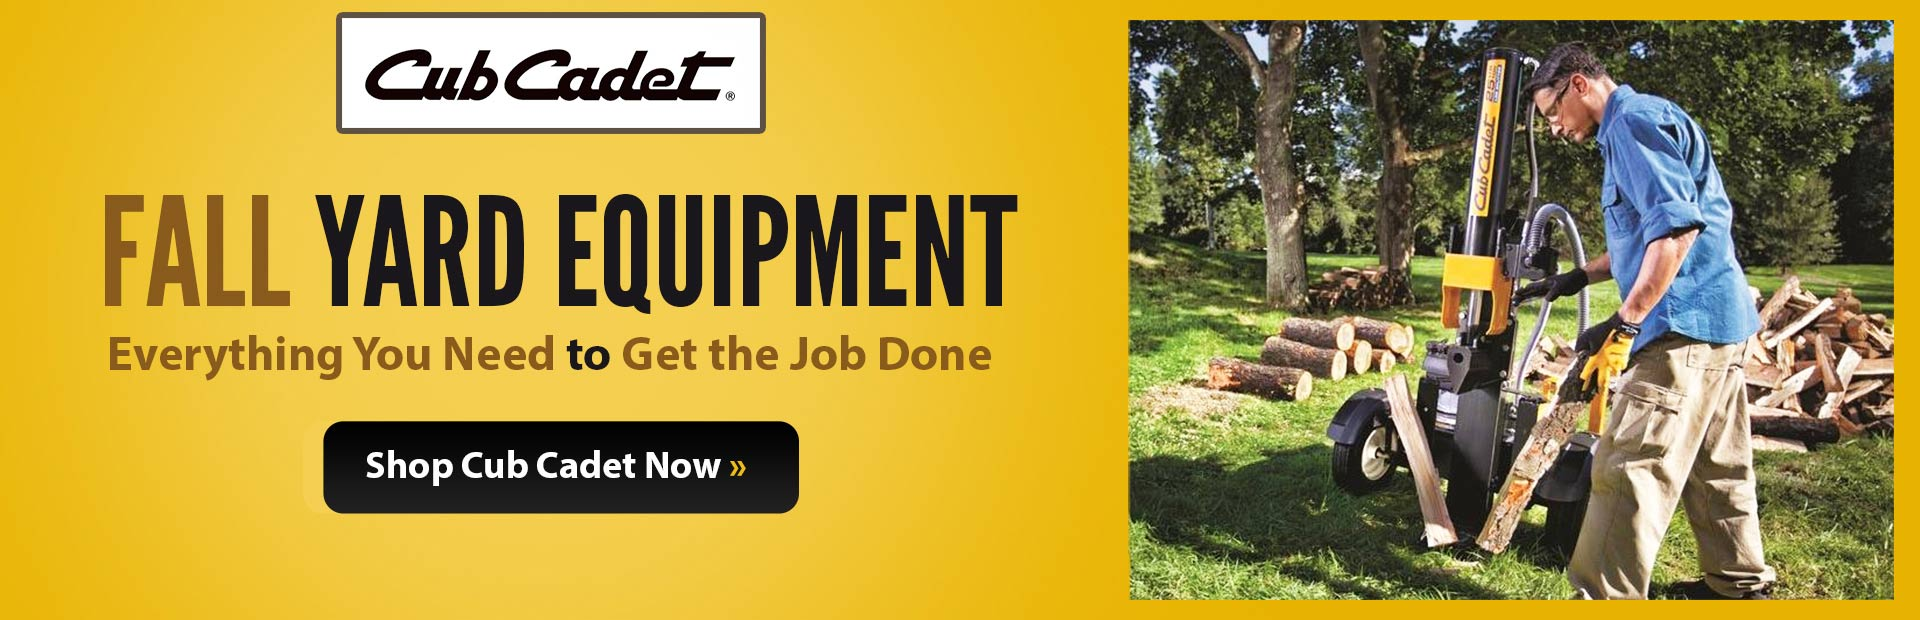 Browse Cub Cadet Yard Equipment.